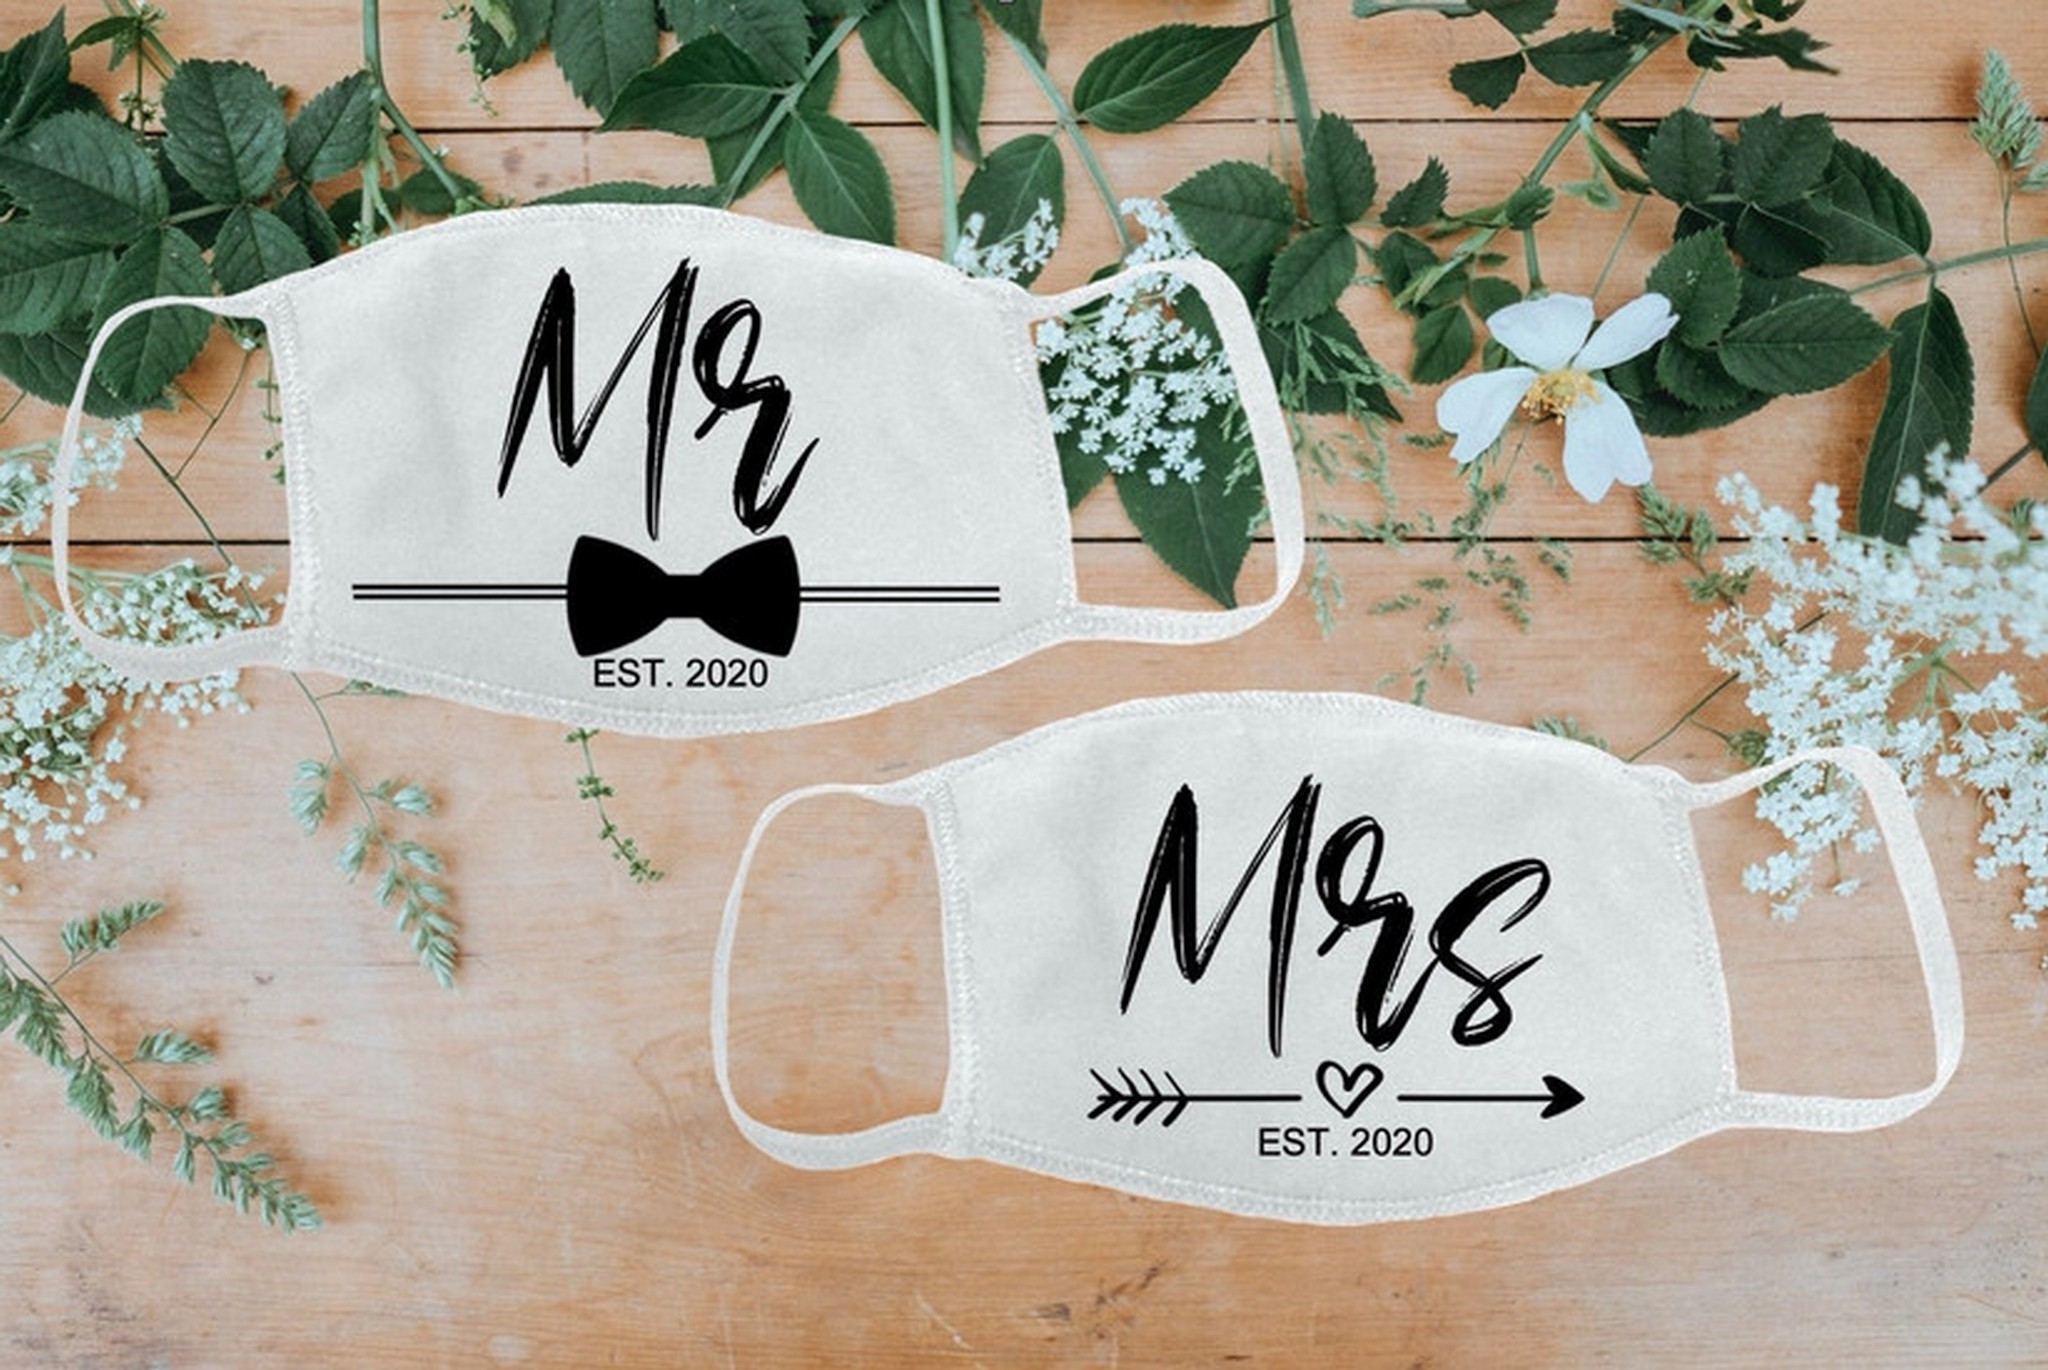 Mr and Mrs masks